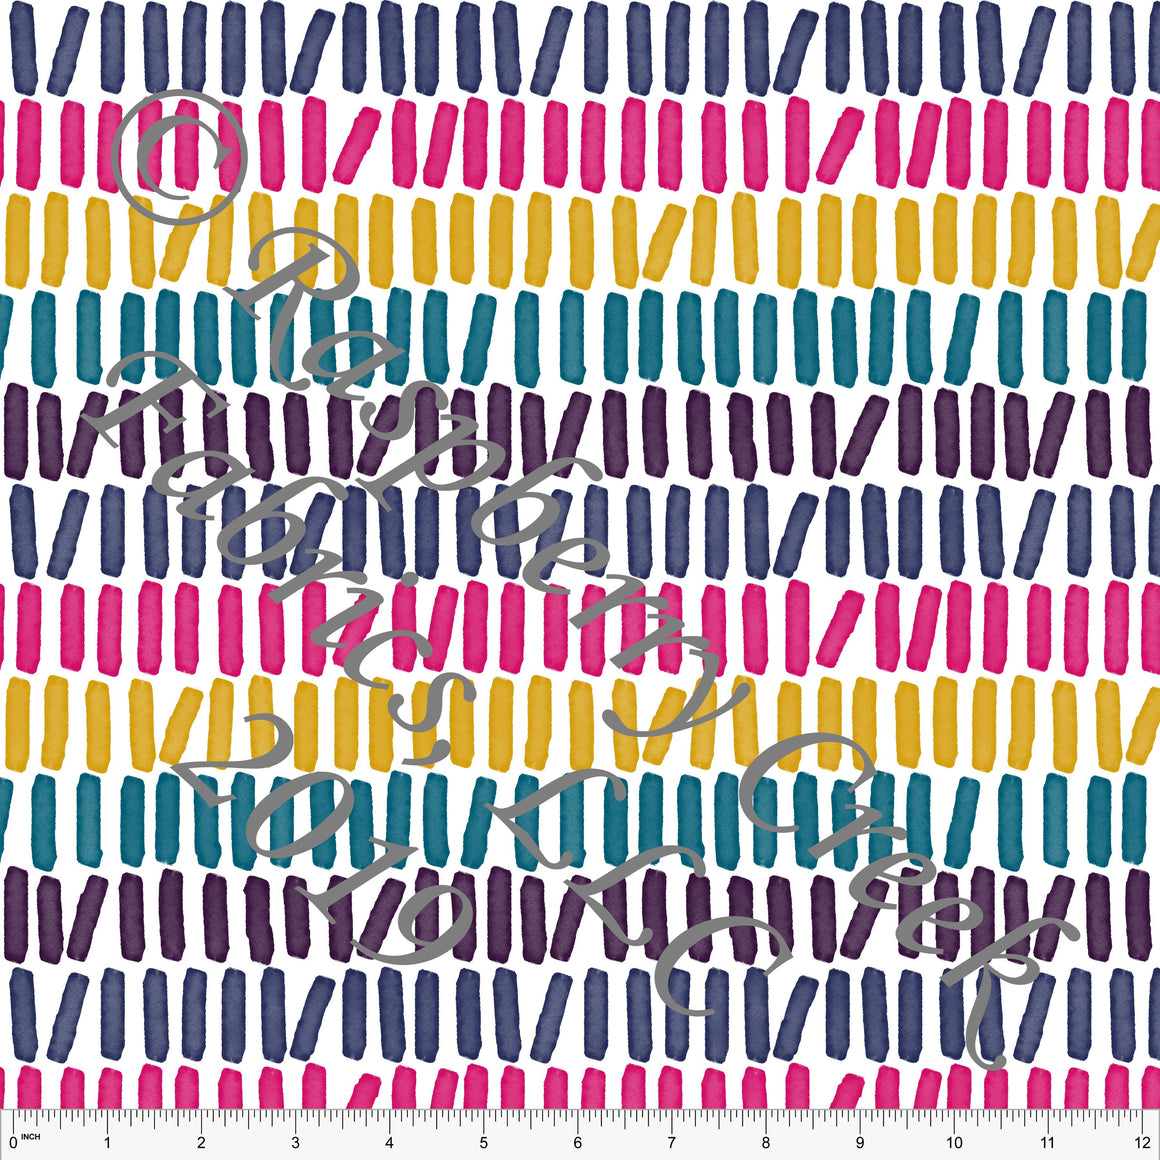 Fuchsia Mustard Teal Navy and Eggplant Vertical Brush Stroke Stripes By Brittney Laidlaw for Club Fabrics - Raspberry Creek Fabrics